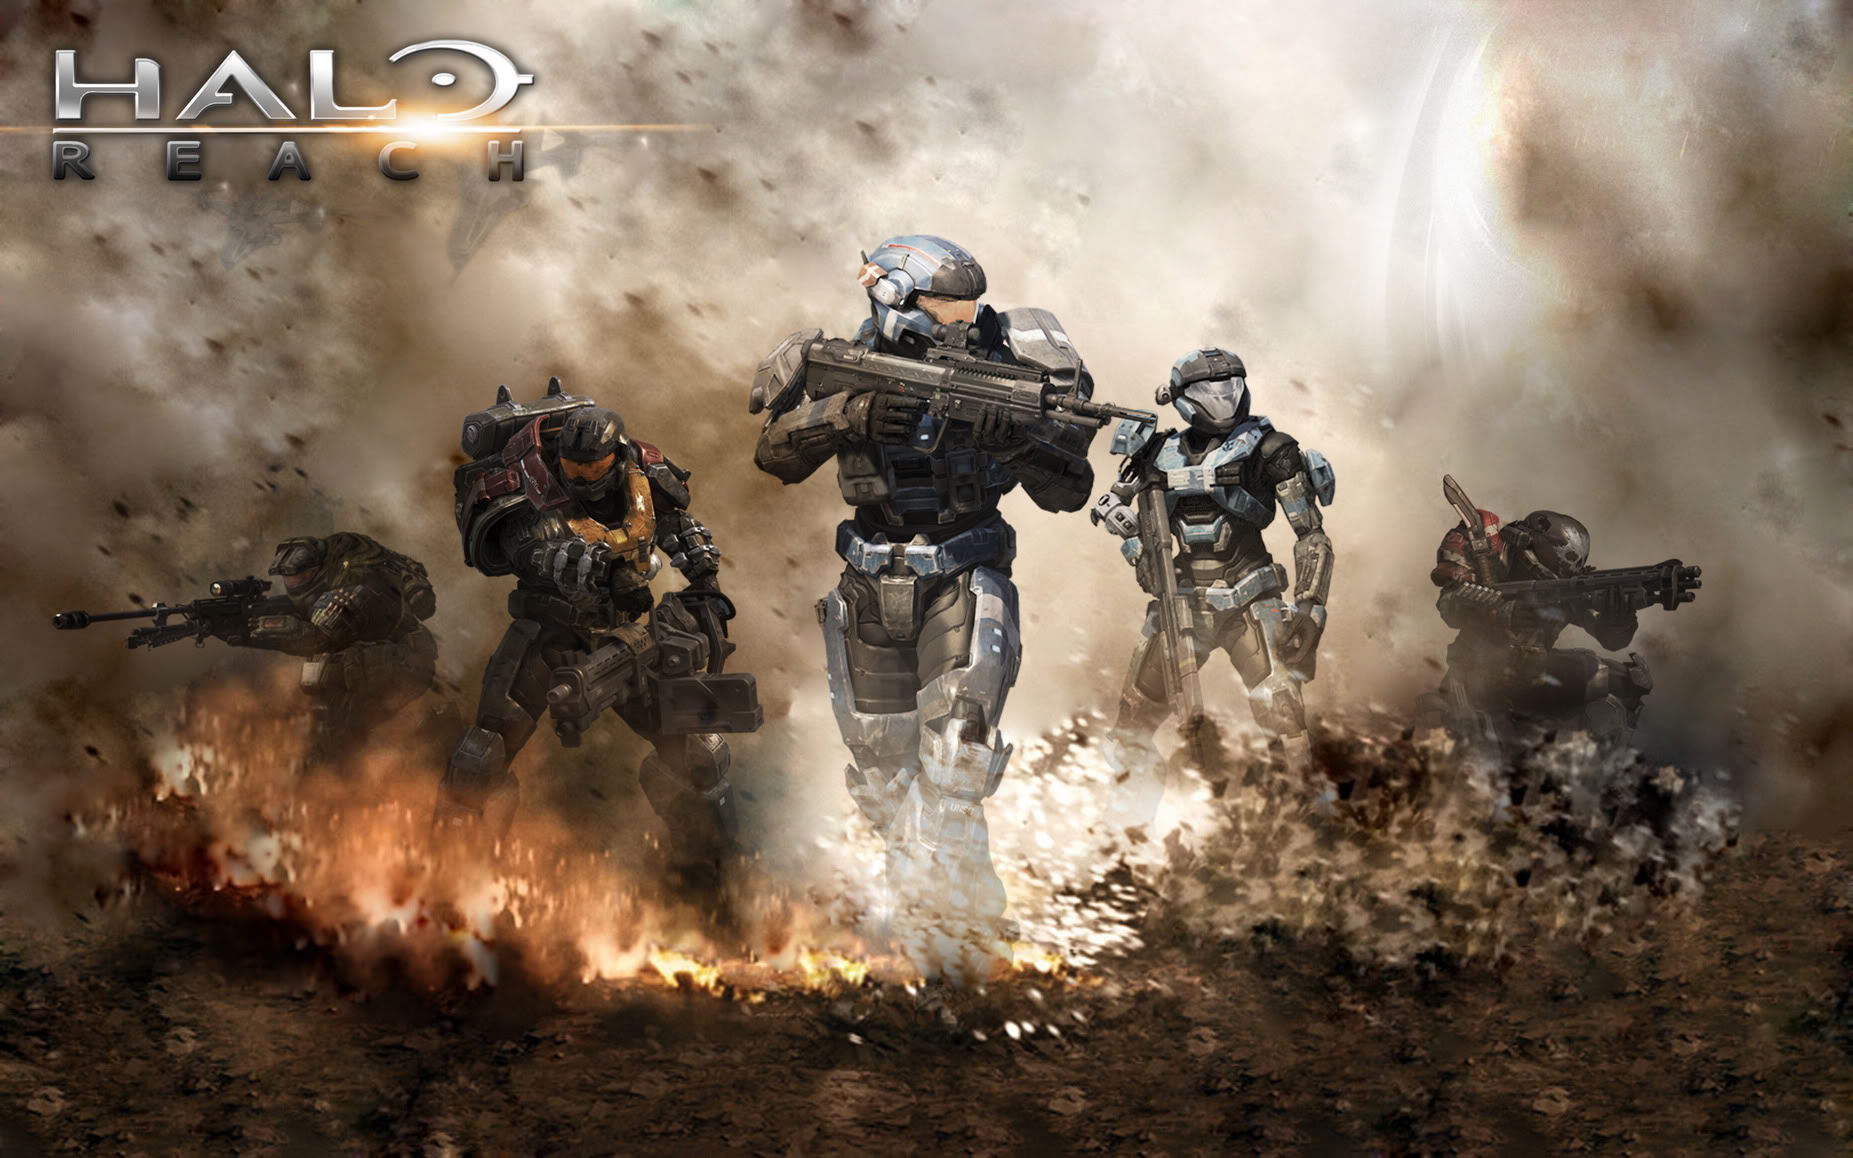 All About Halo Halo Wallpapers 1853x1158